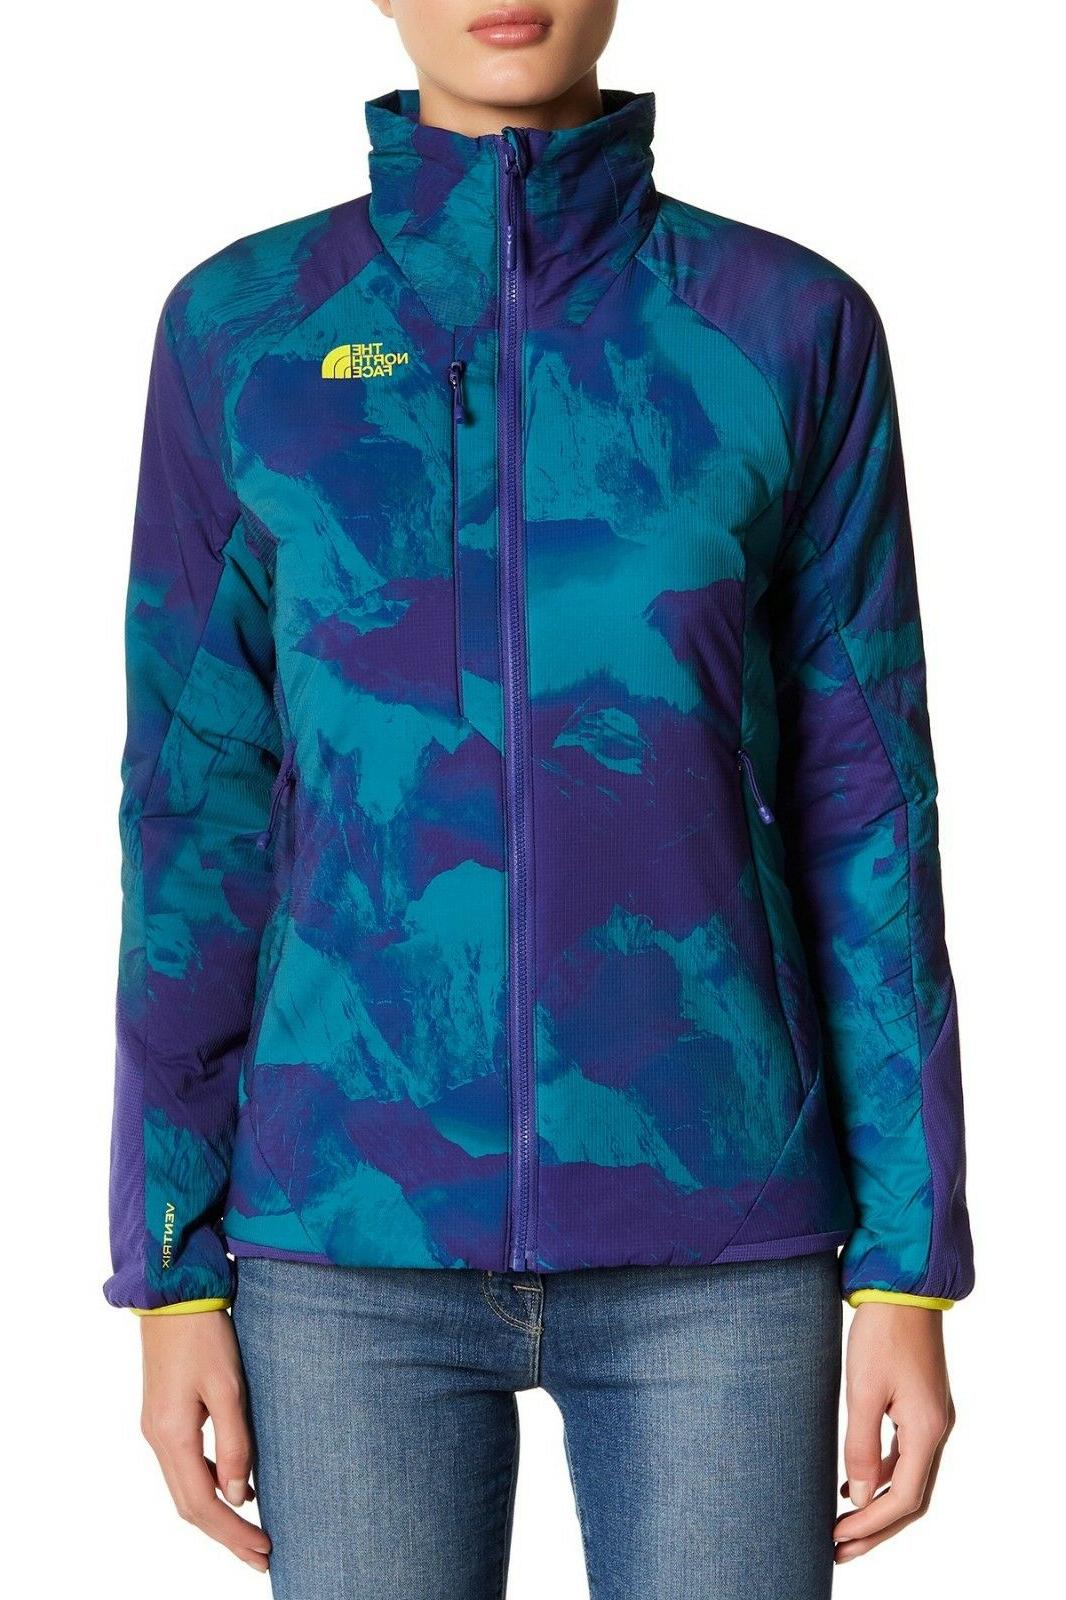 $199 Women's Insulated Hiking Jacket L